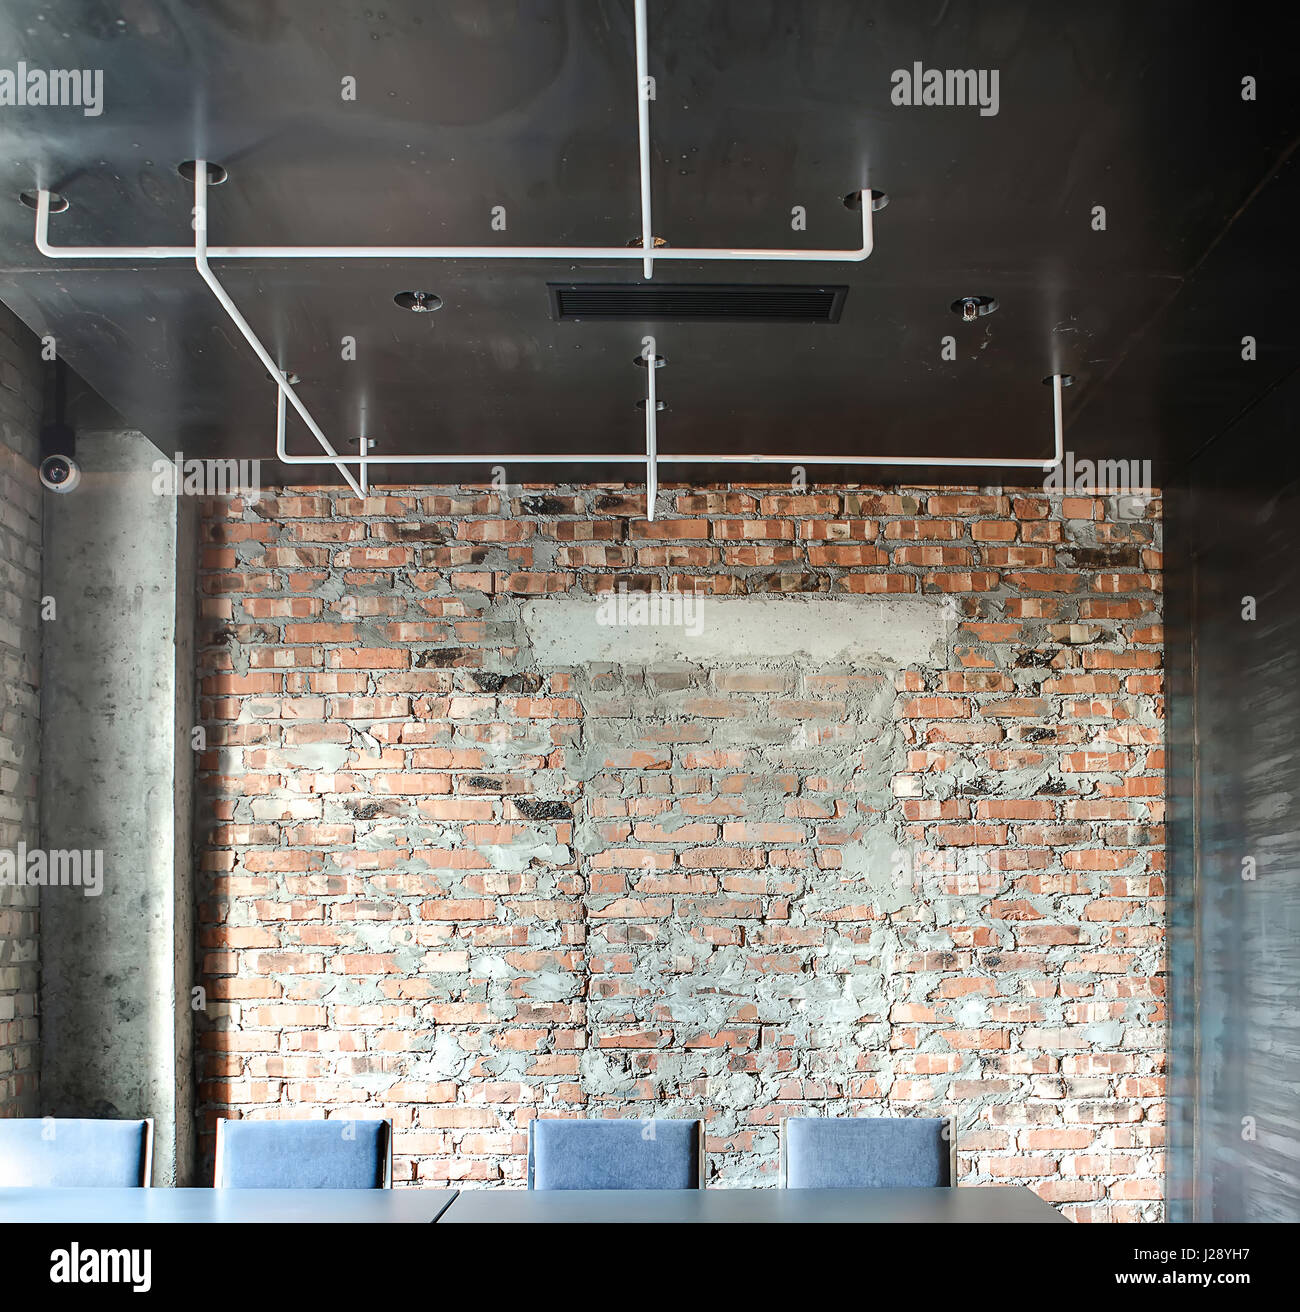 hall in a loft style in a cafe with brick walls and concrete